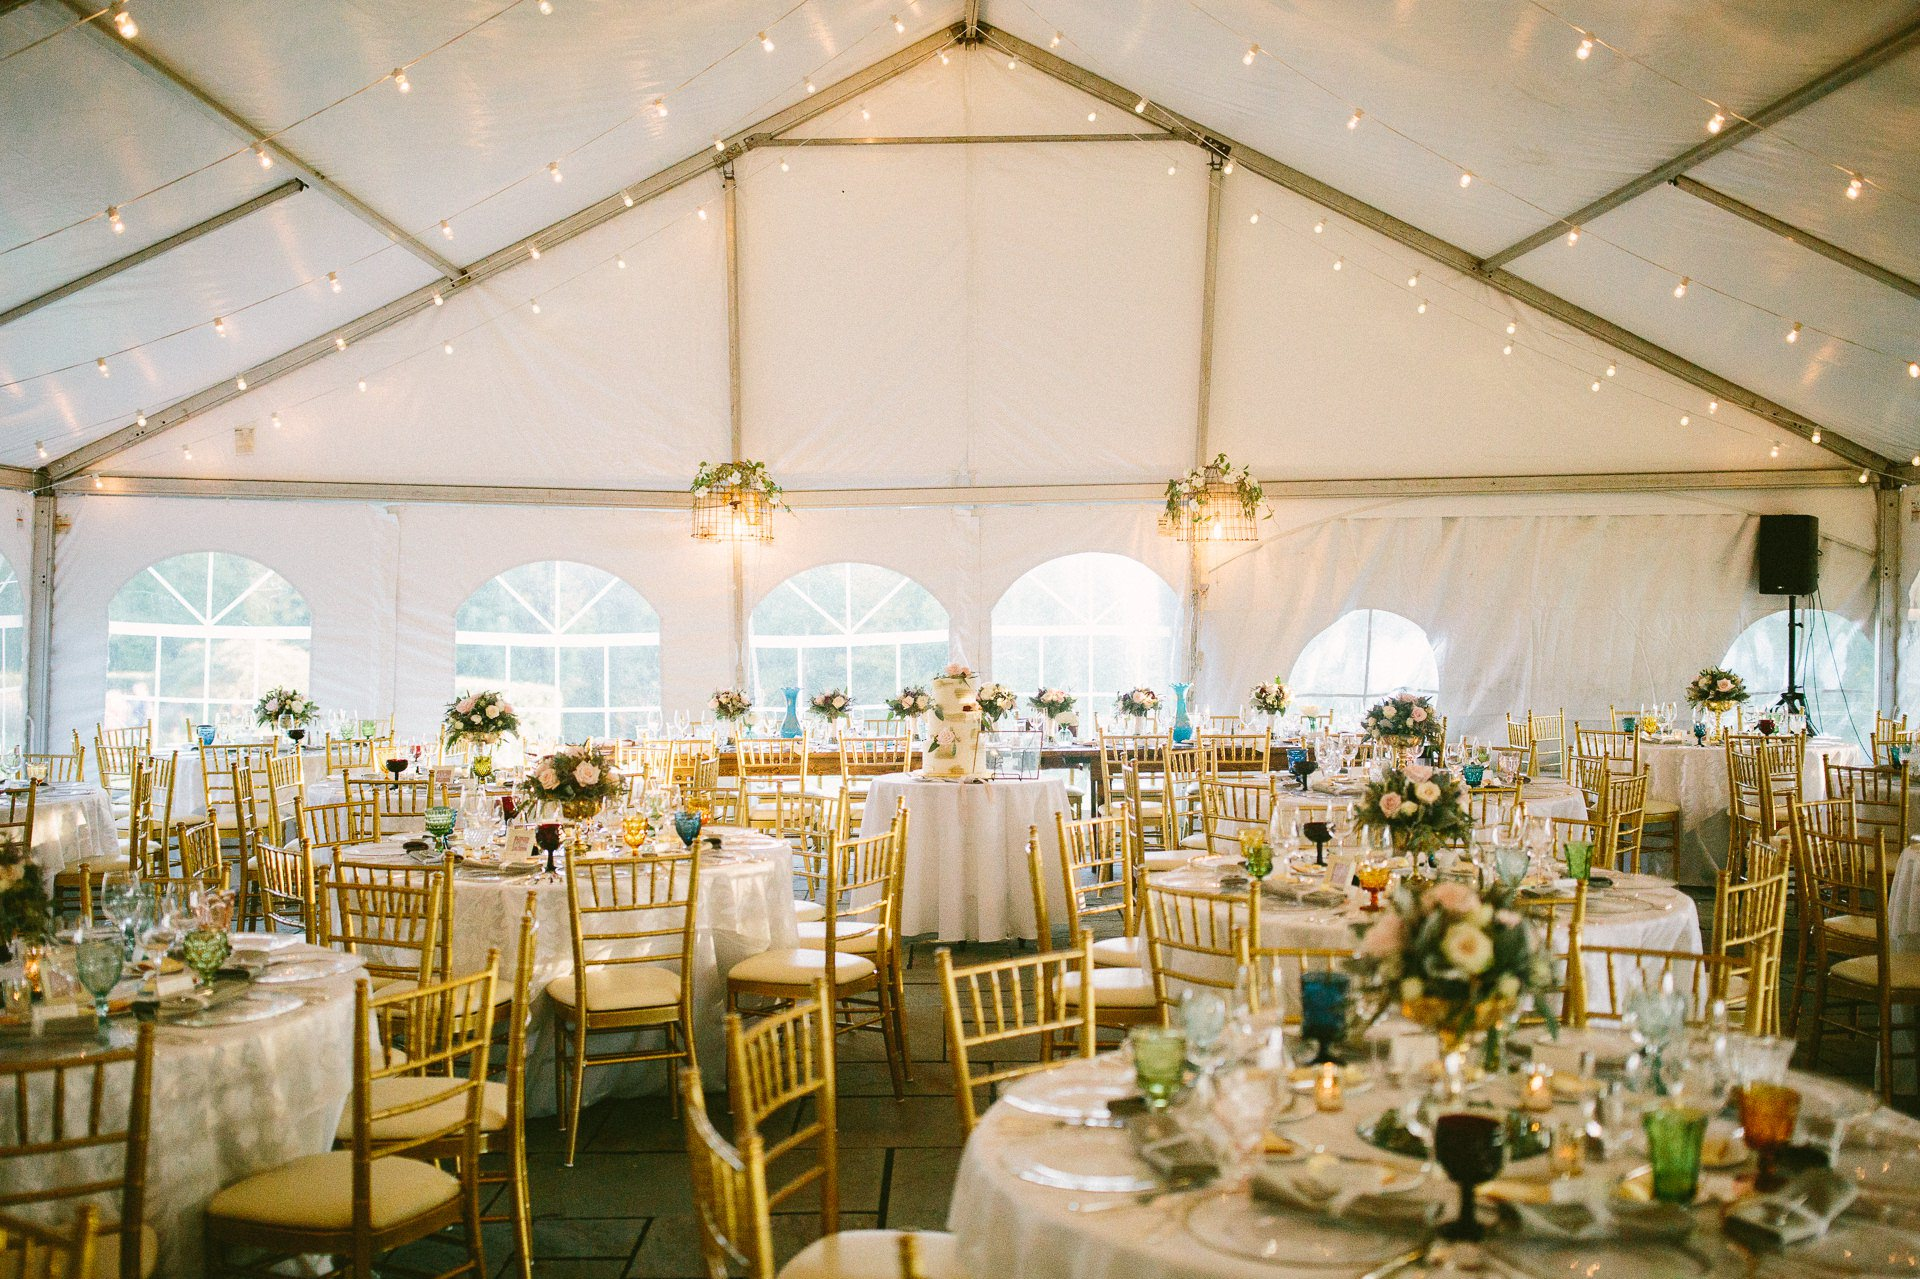 Wedding at Kirtland Country Club in Willoughby 3 23.jpg